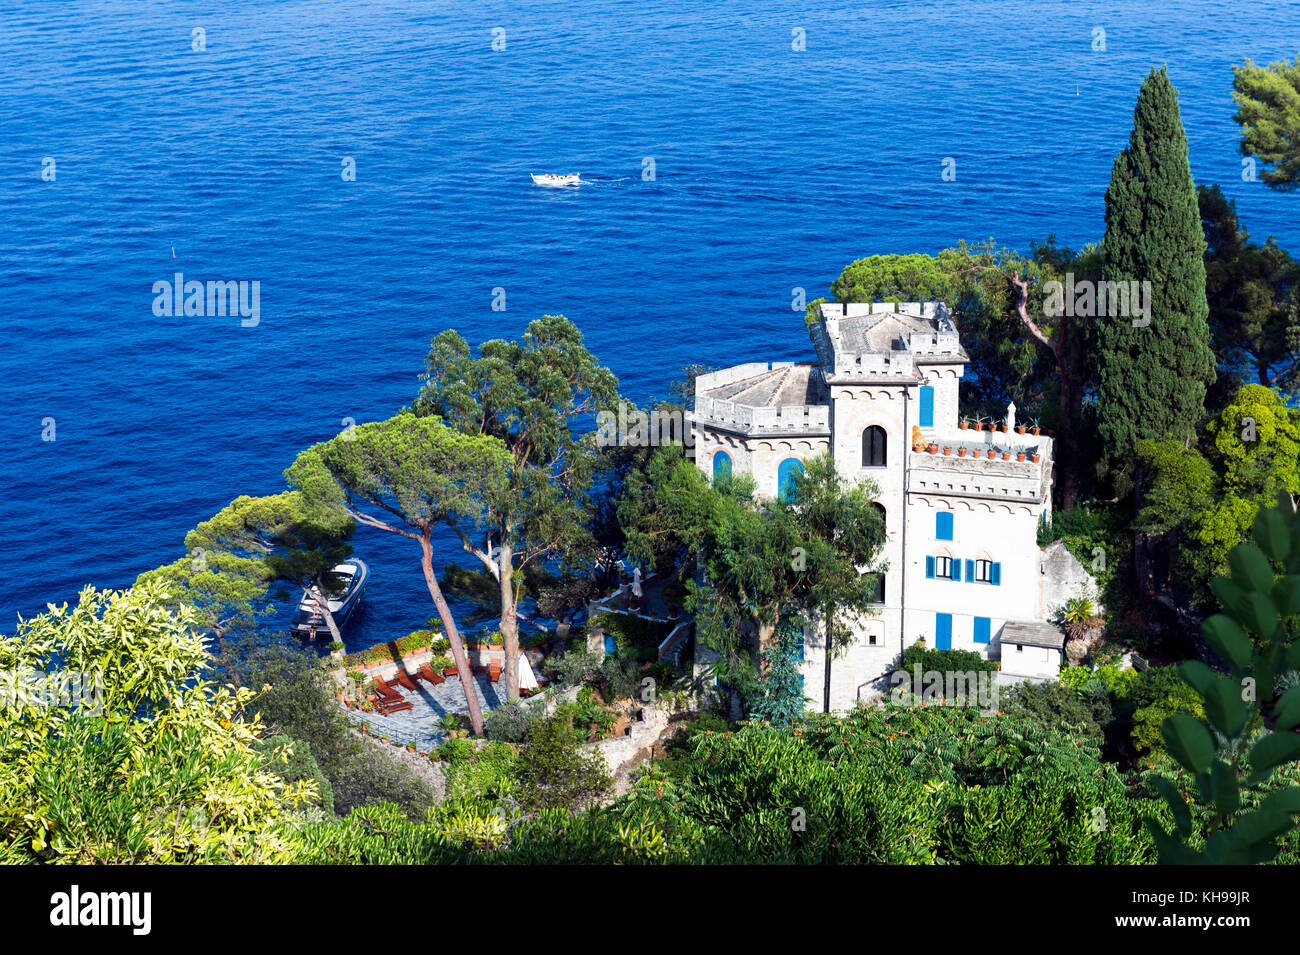 Italy. Liguria. Gulf of Tigullio, Italian Riviera. Portofino. Villa overlooking the sea owned by Dolce & Gabbana - Stock Image